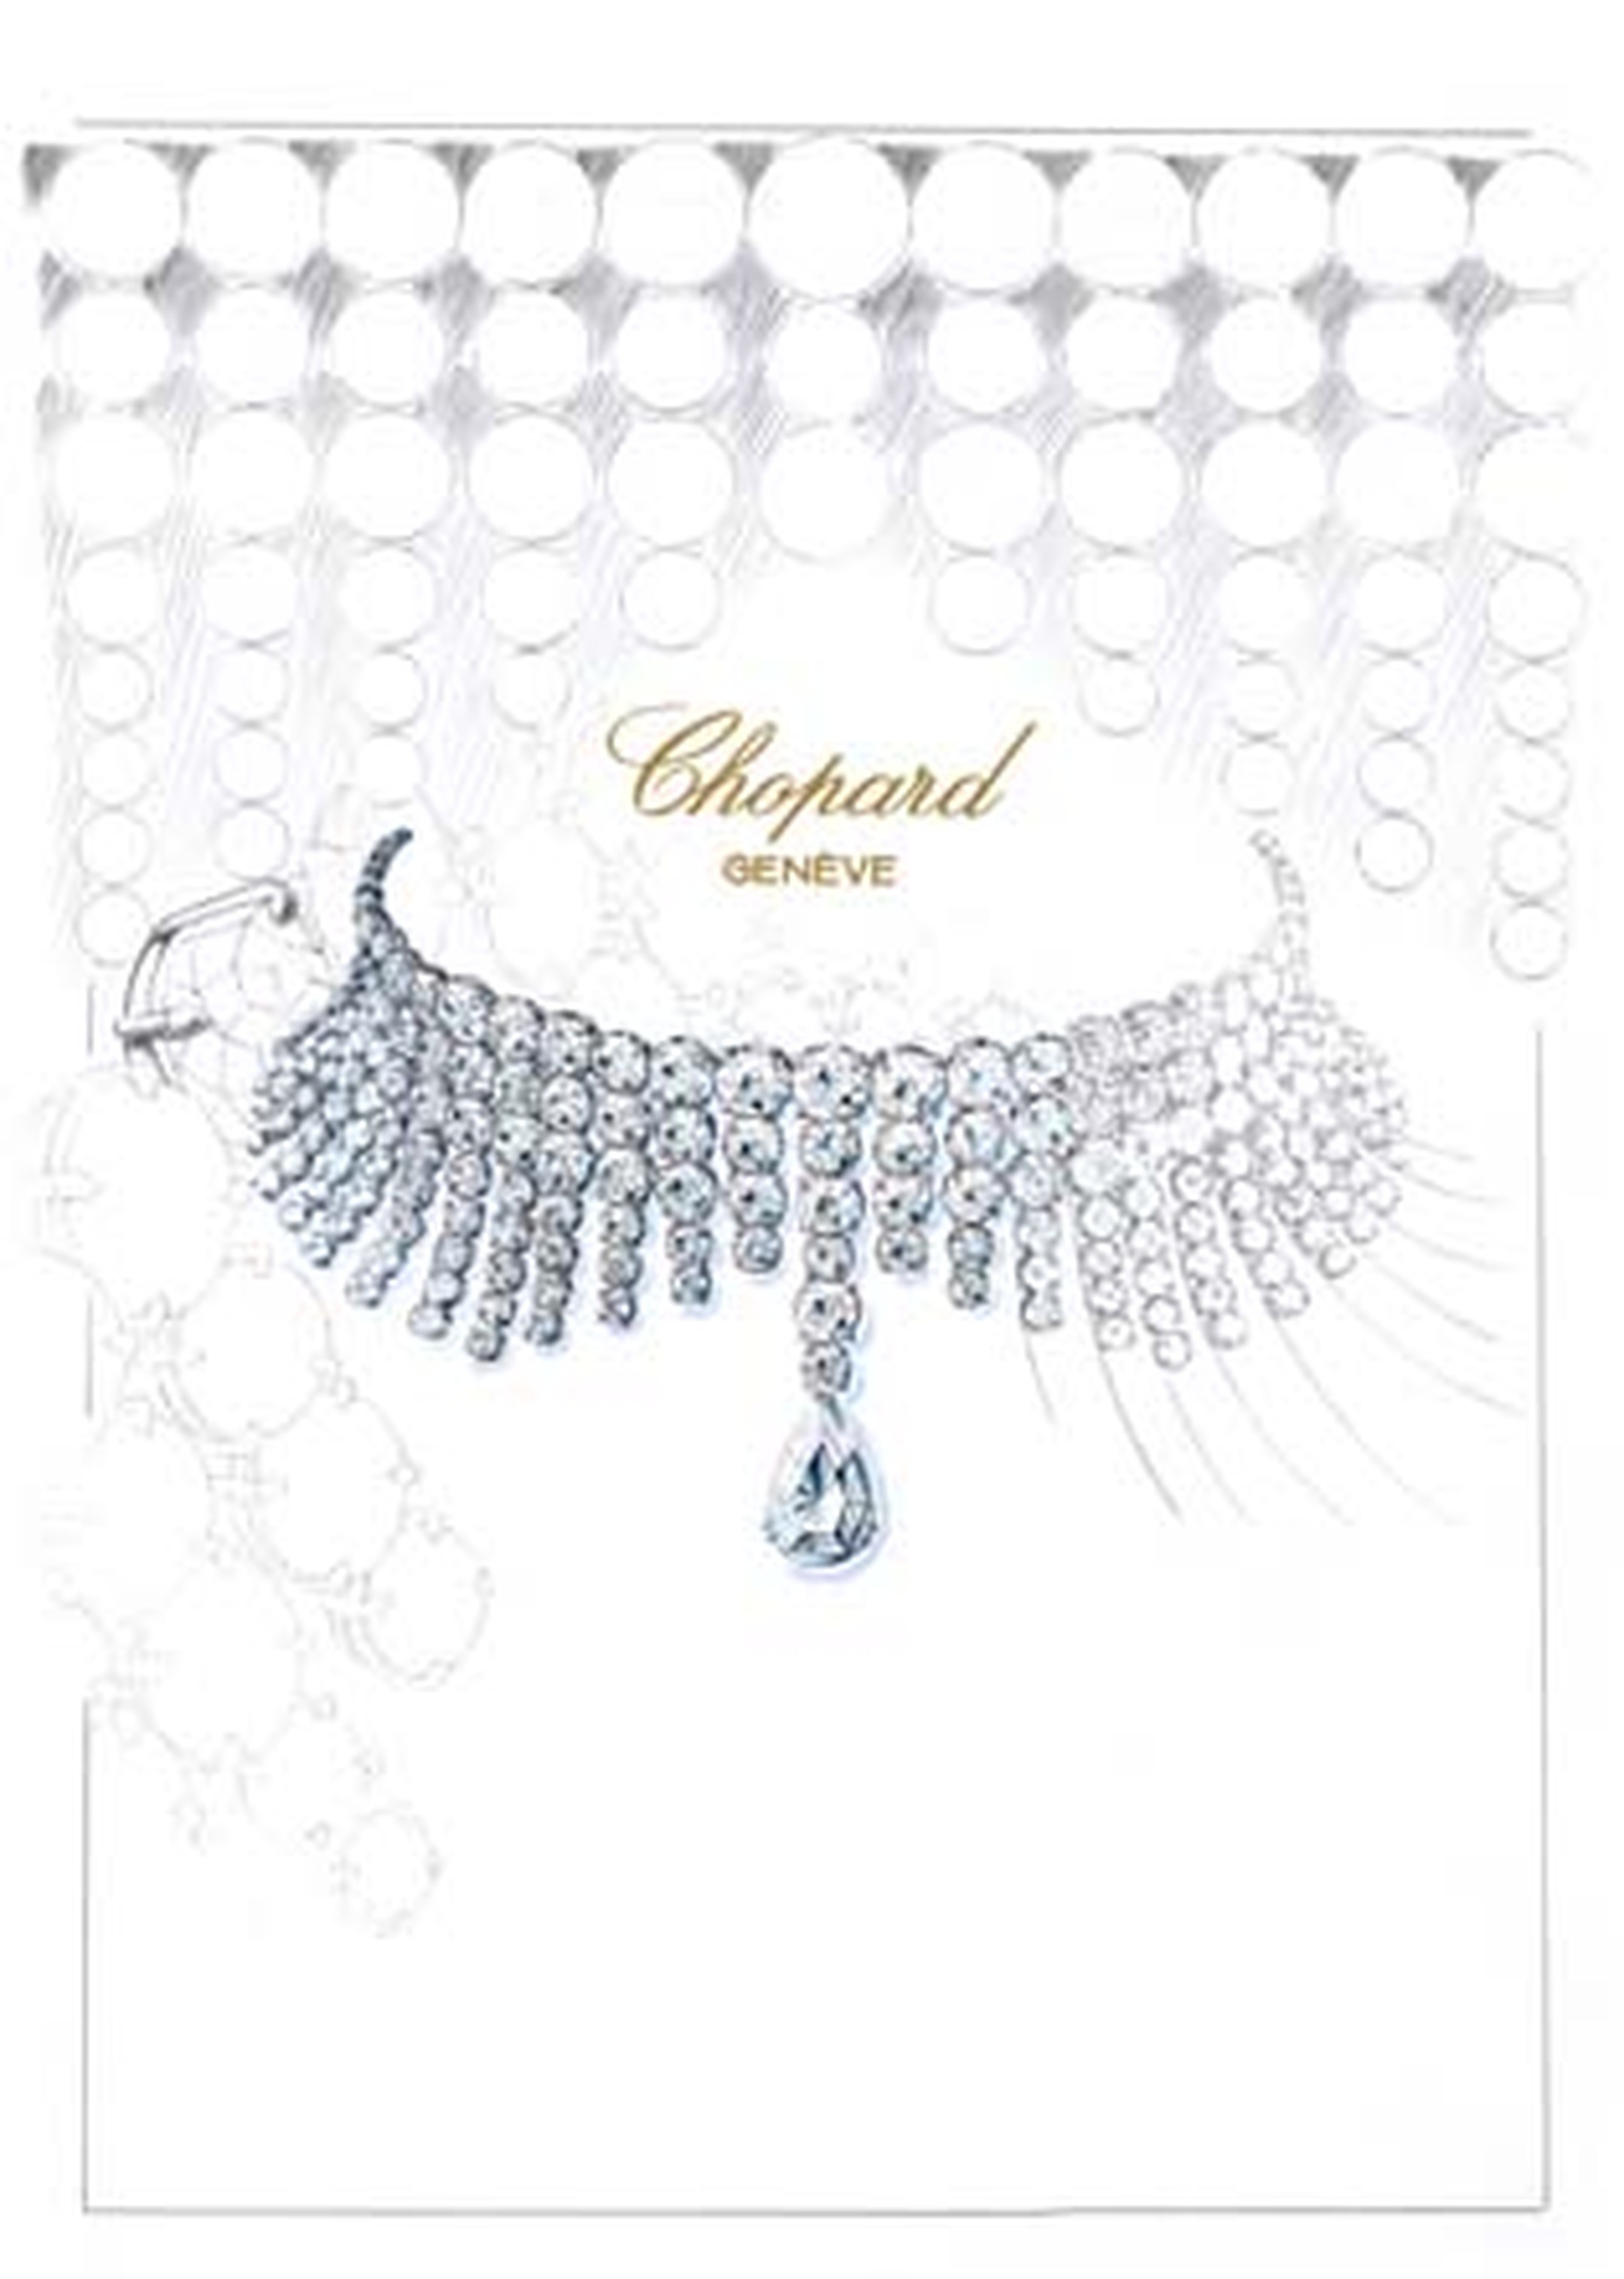 810391-1001 Sketch Diamond Necklace from the Red Carpet Collection 2013.jpg